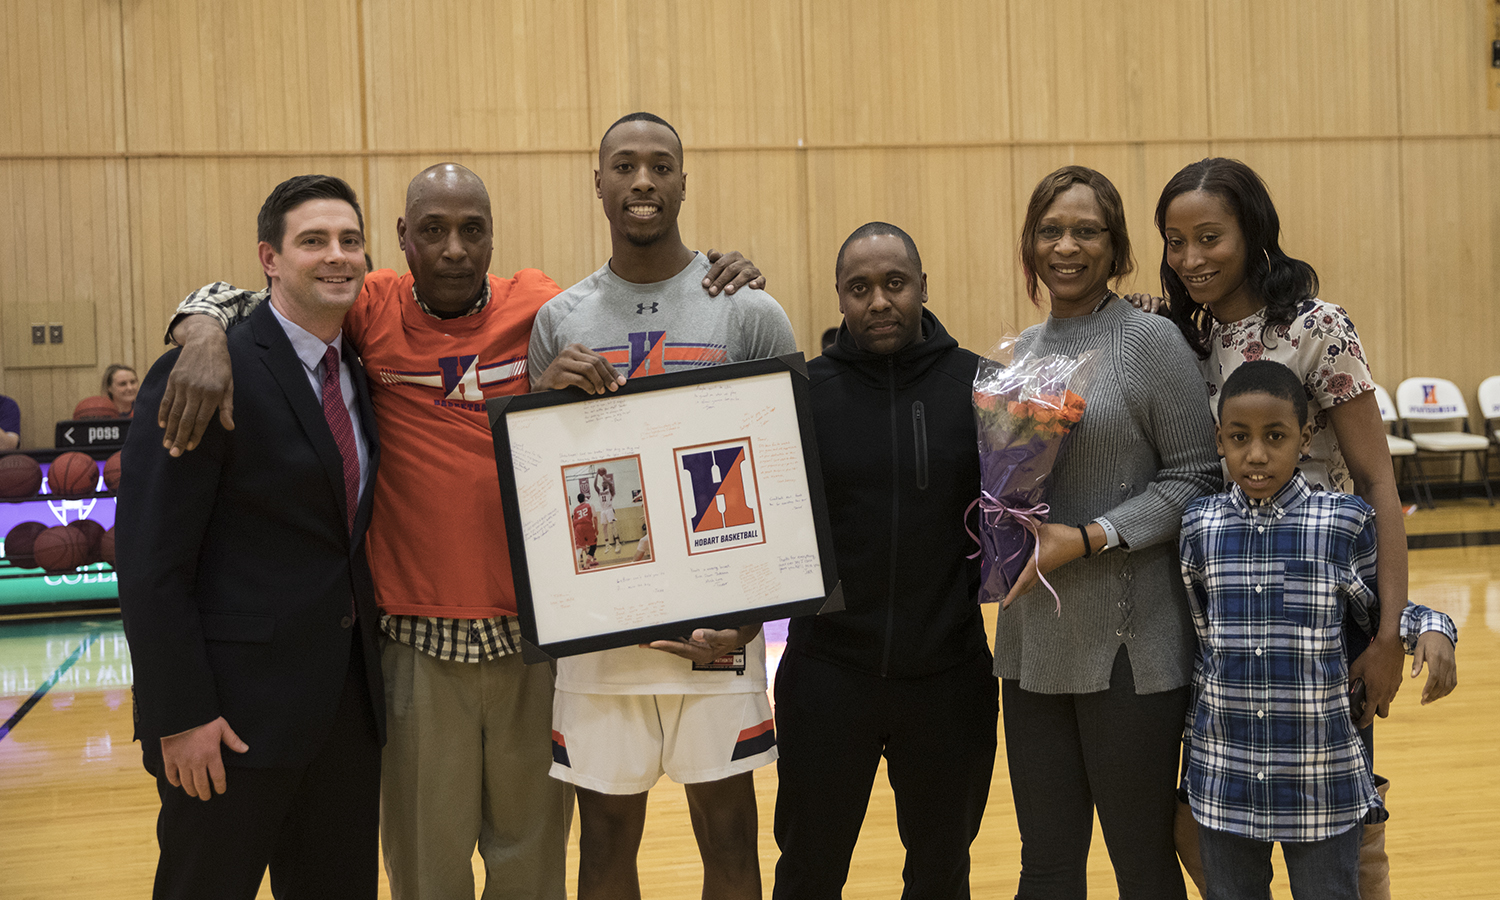 Jamal Lucas '19 is honored by his coaches and family for his contributions to the Hobart Basketball team during senior night. The statesman later went on to defeat Bard College 83-80.